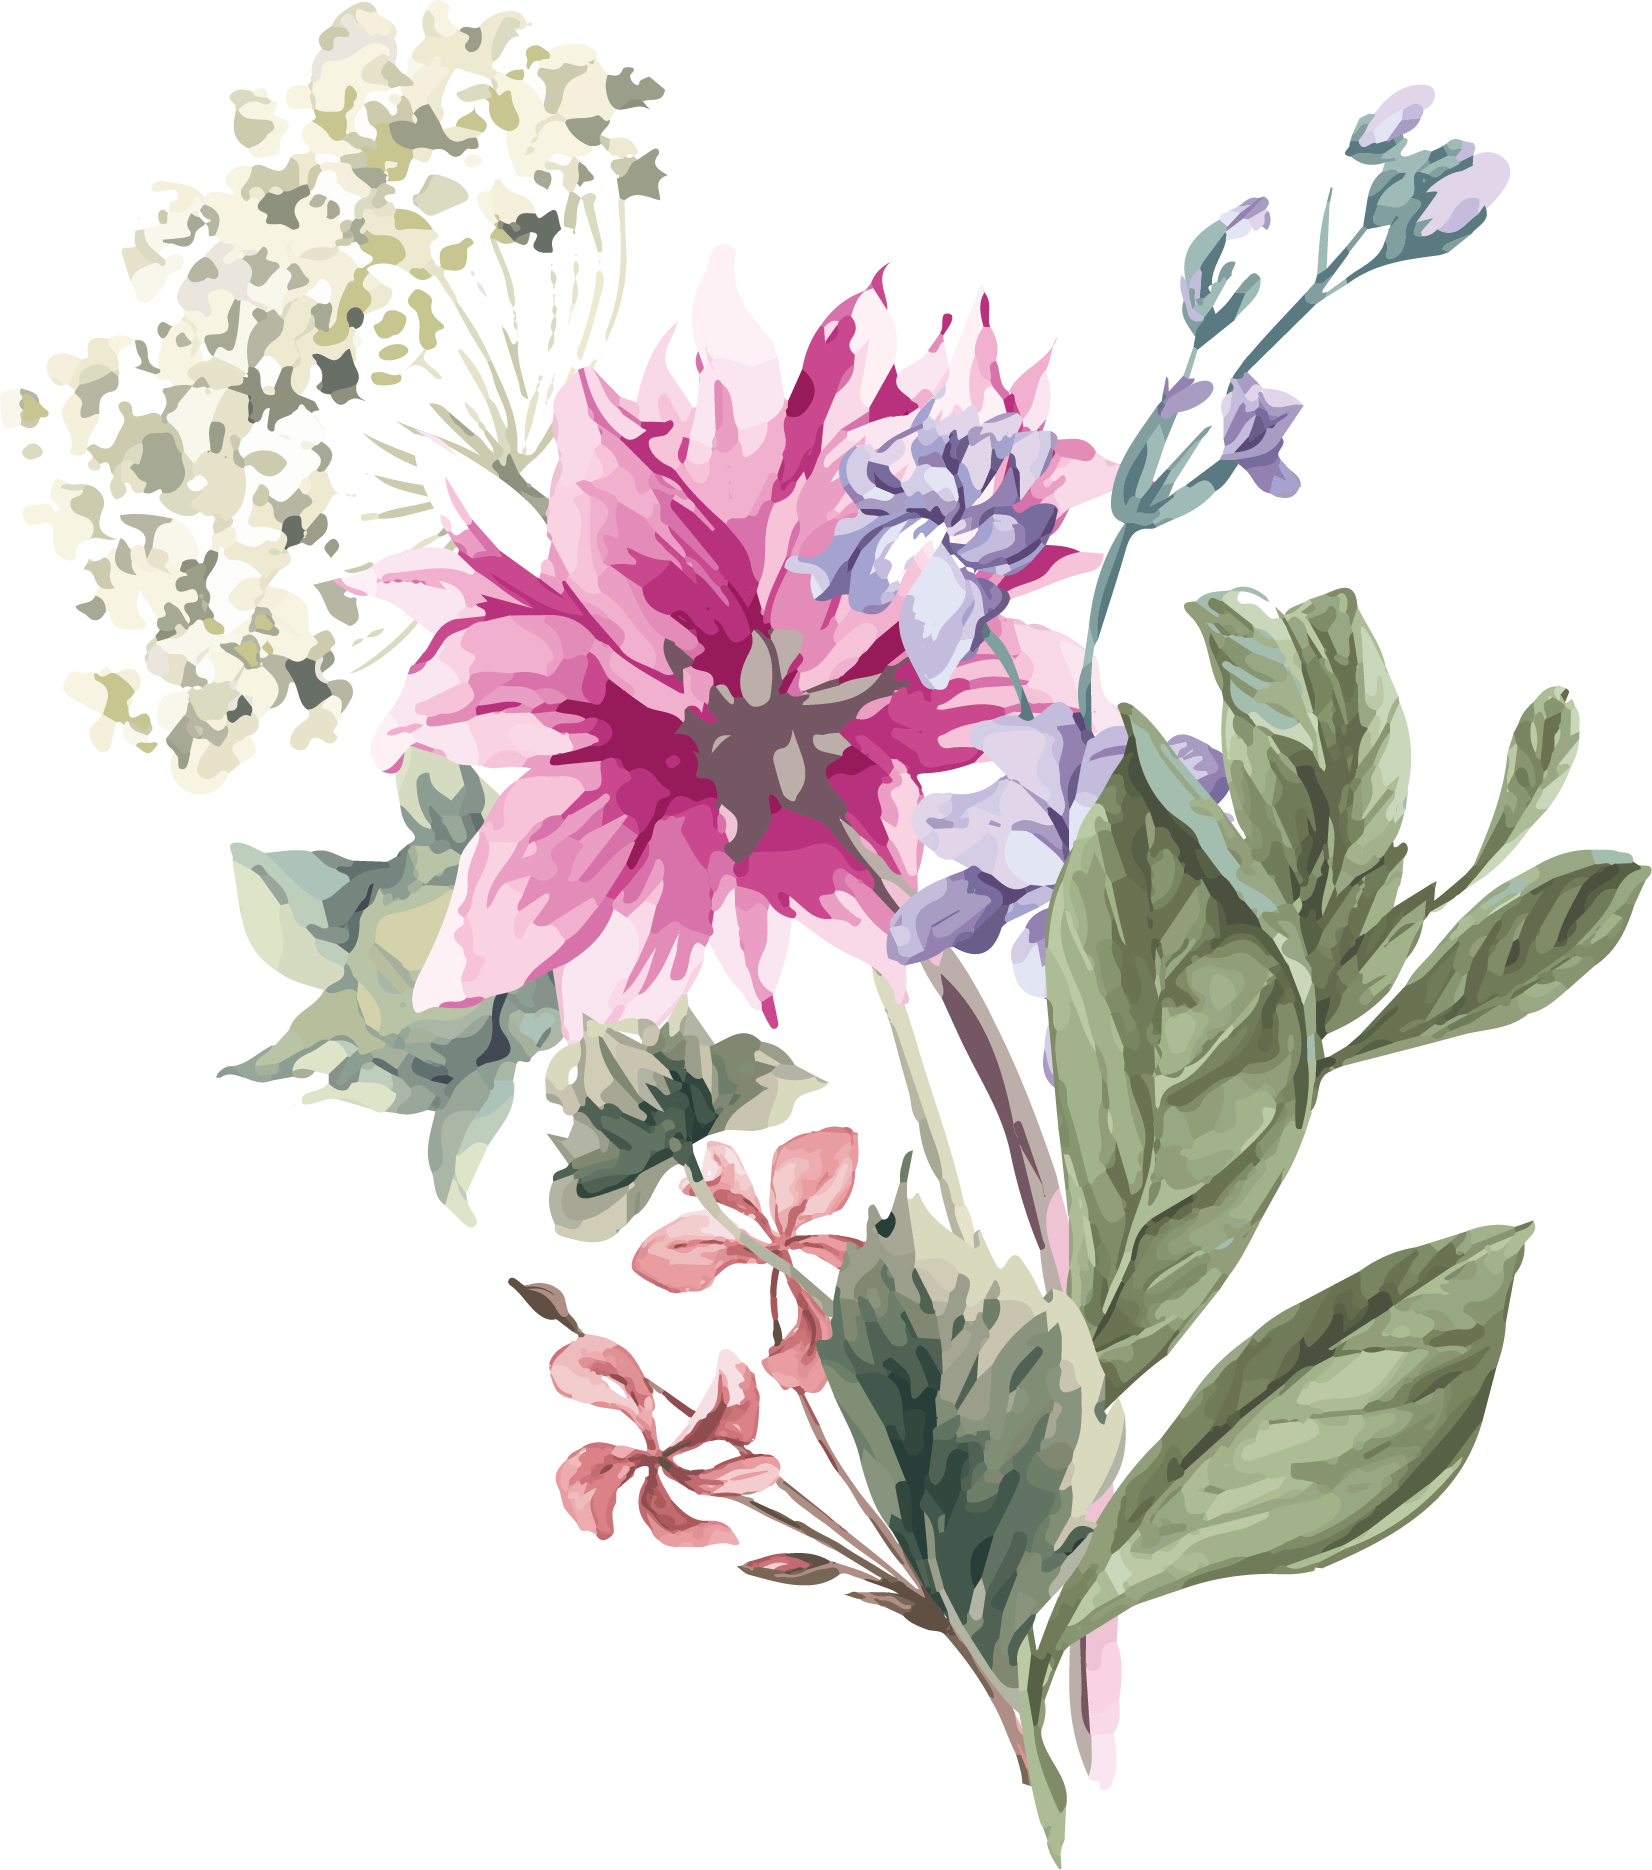 Flower stock png. Hydrangea illustration hand painted